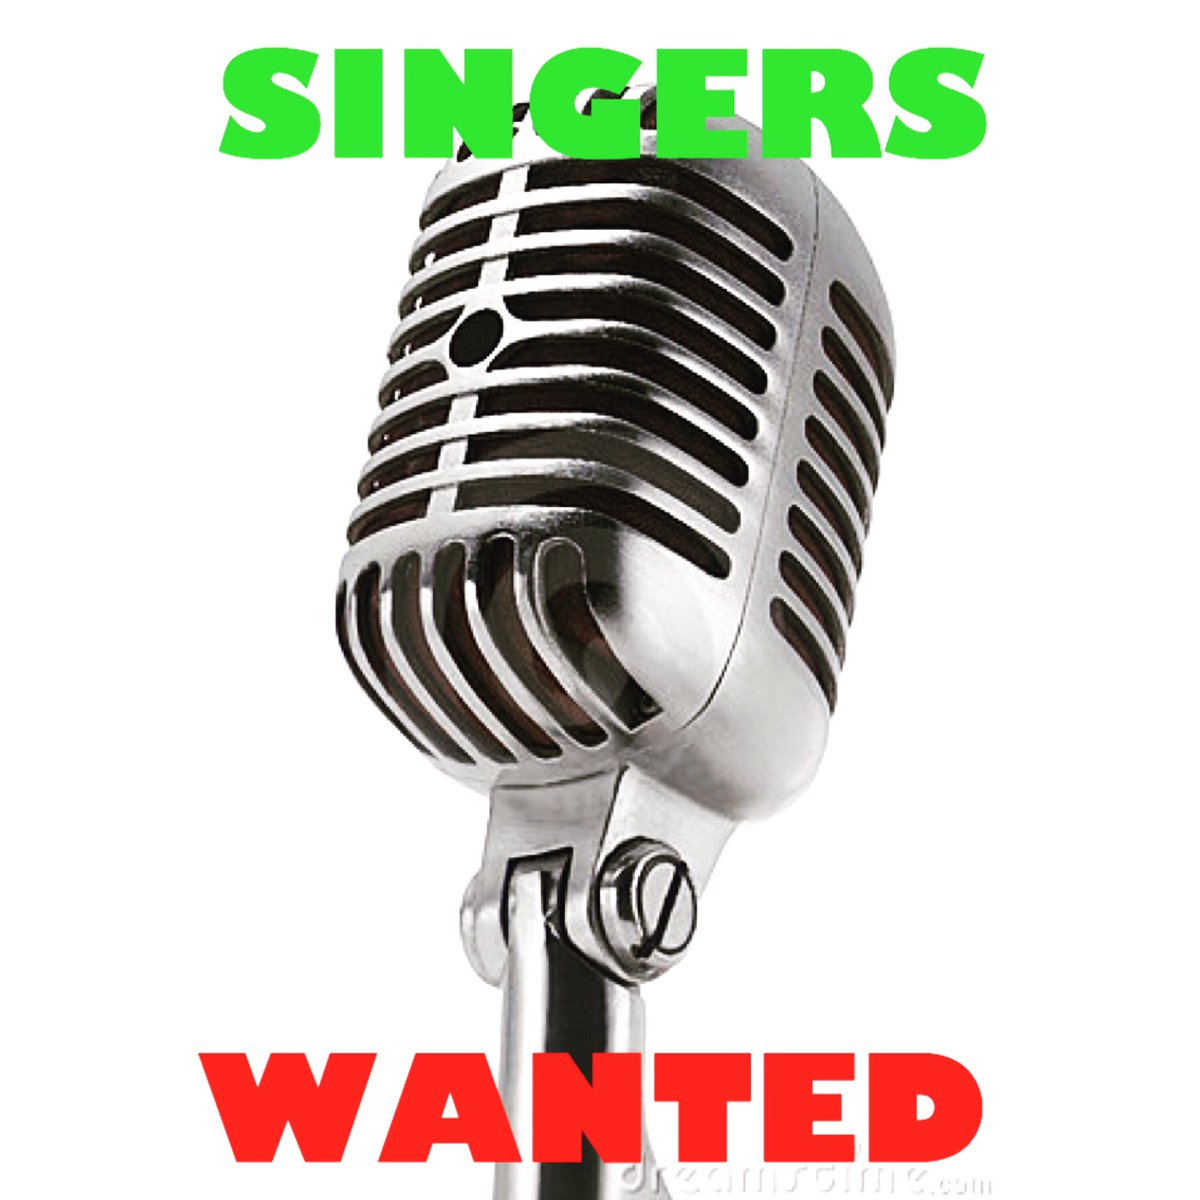 I'm looking for tour singers in the NYC area . Send singing video to makenoiseartists@gmail.com  Thanks !!! https://t.co/Ugcgd11YRm